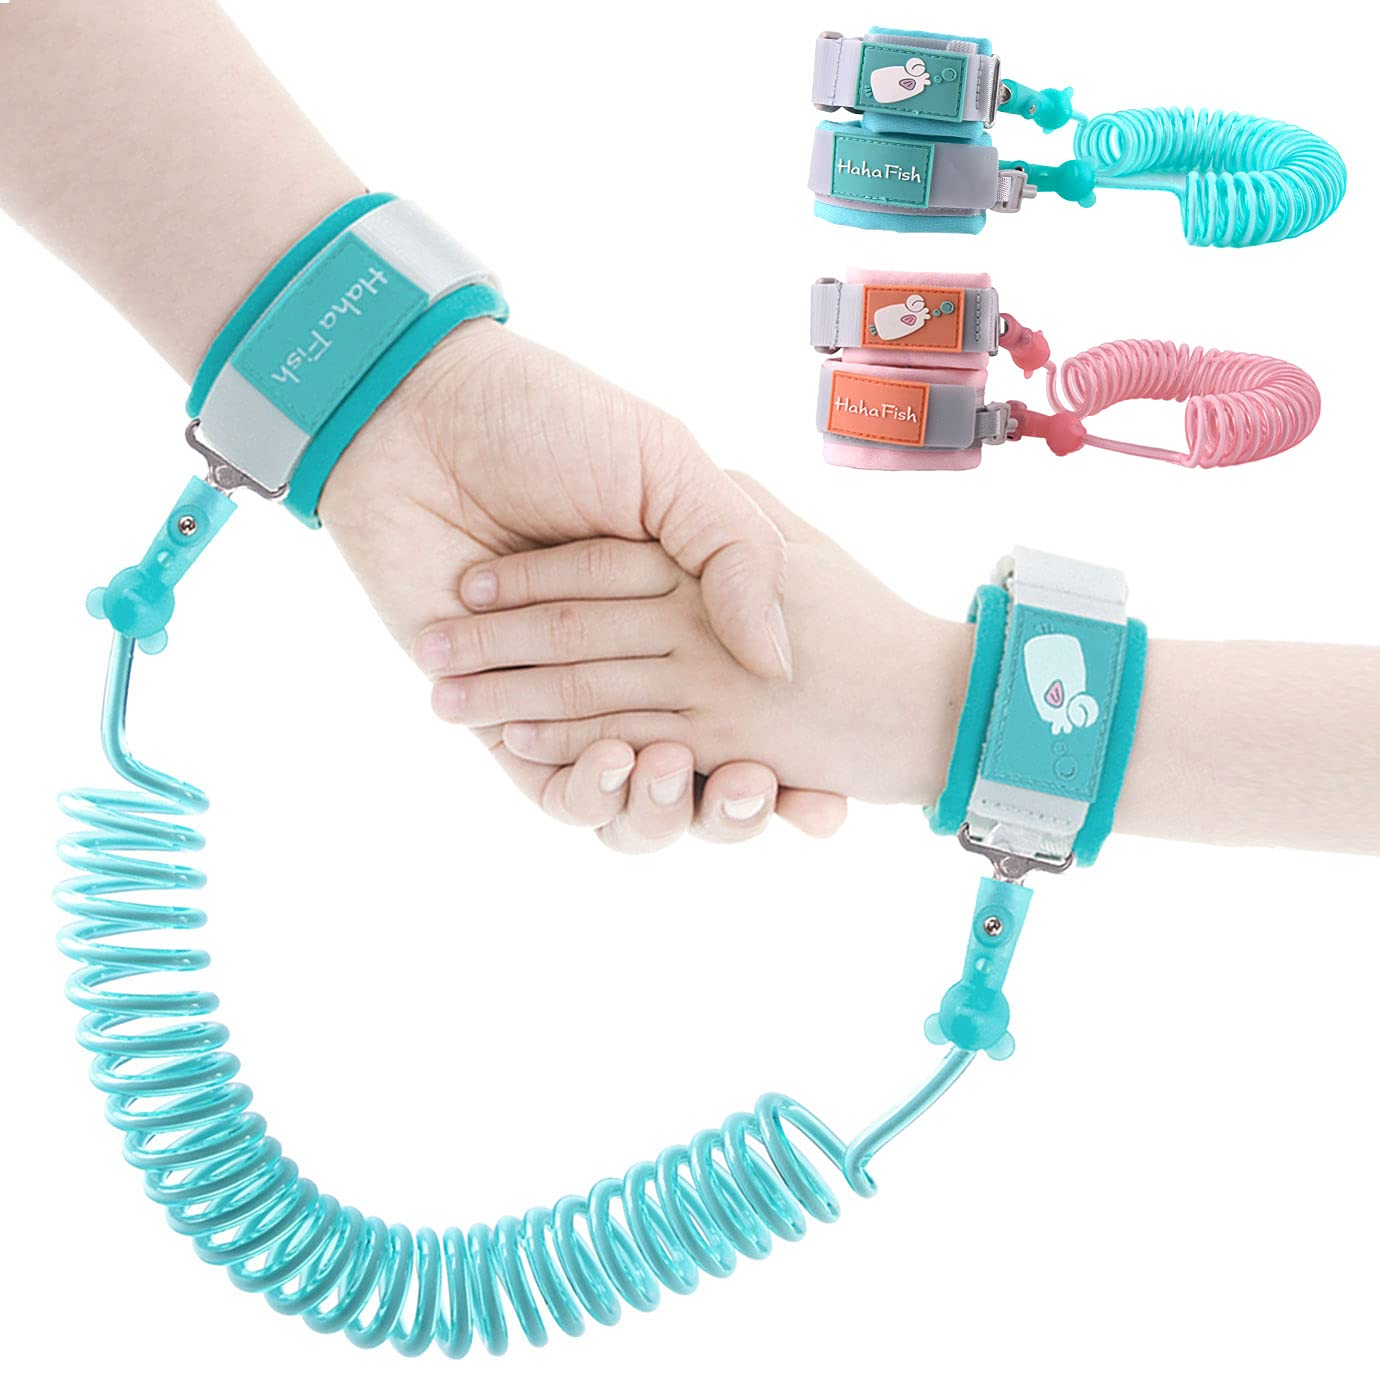 KONUNUS 2 Pieces Anti Lost Wrist Link Baby Anti Lost Leash Toddler Traction Belt Child Safety Wristband with Lock for Toddlers and Kids